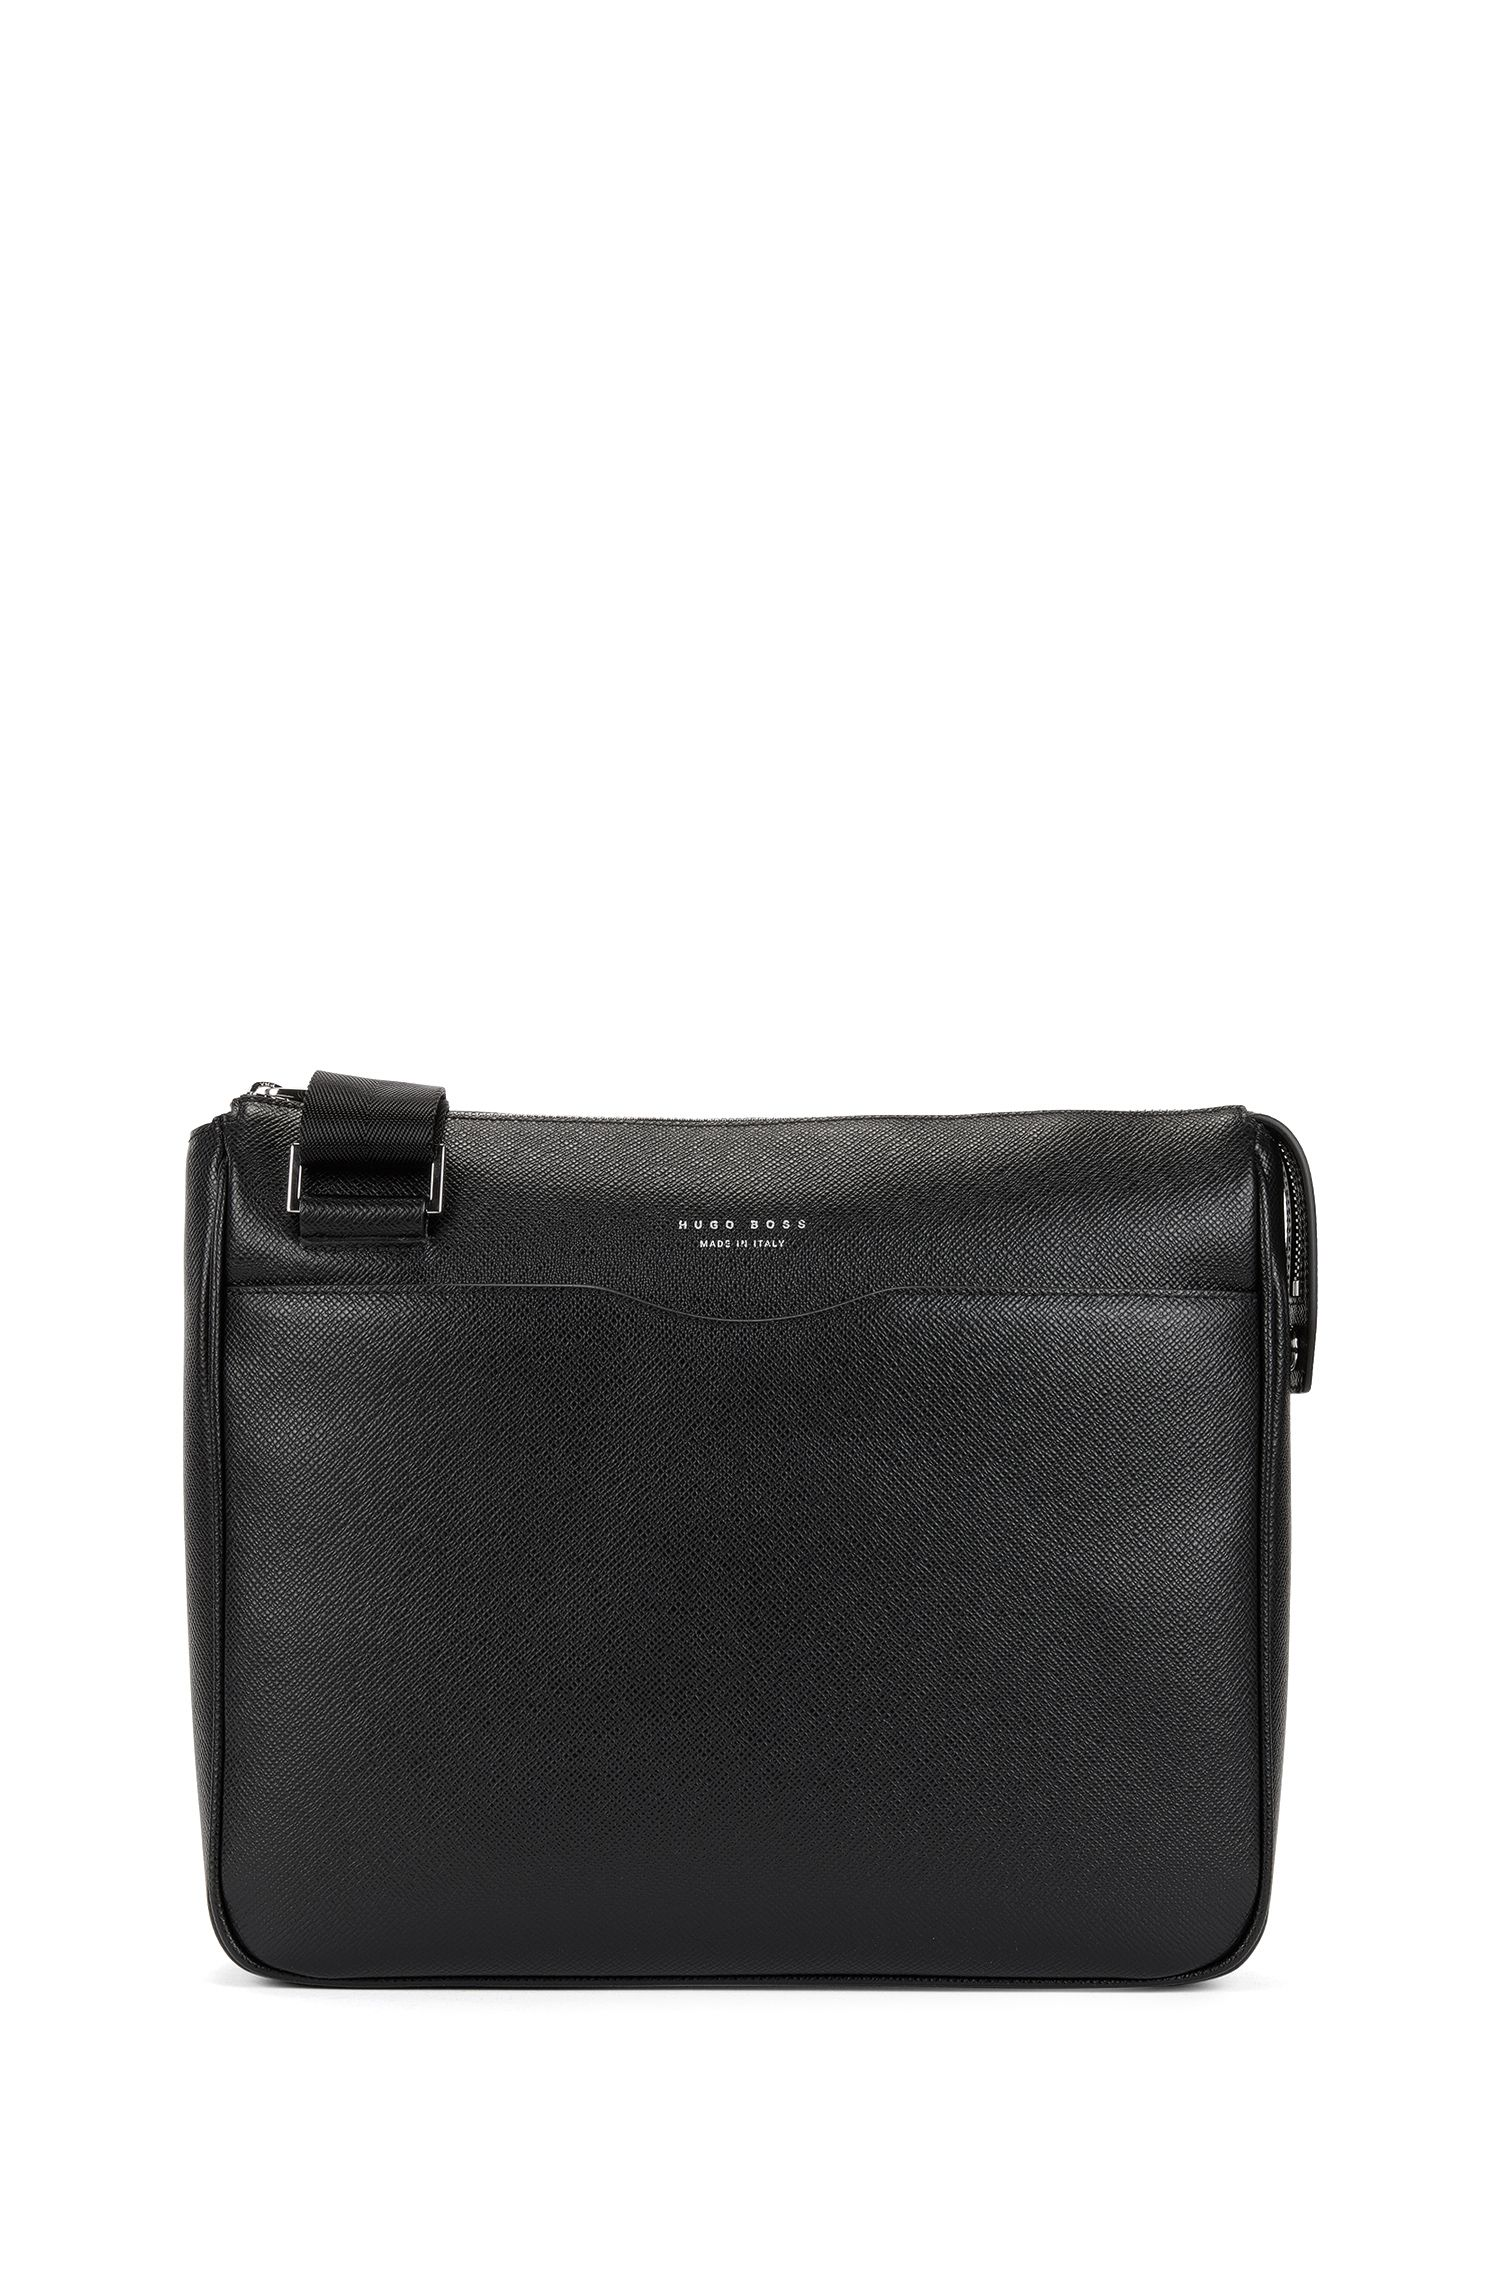 Leather Crossbody | Signature Cross Body